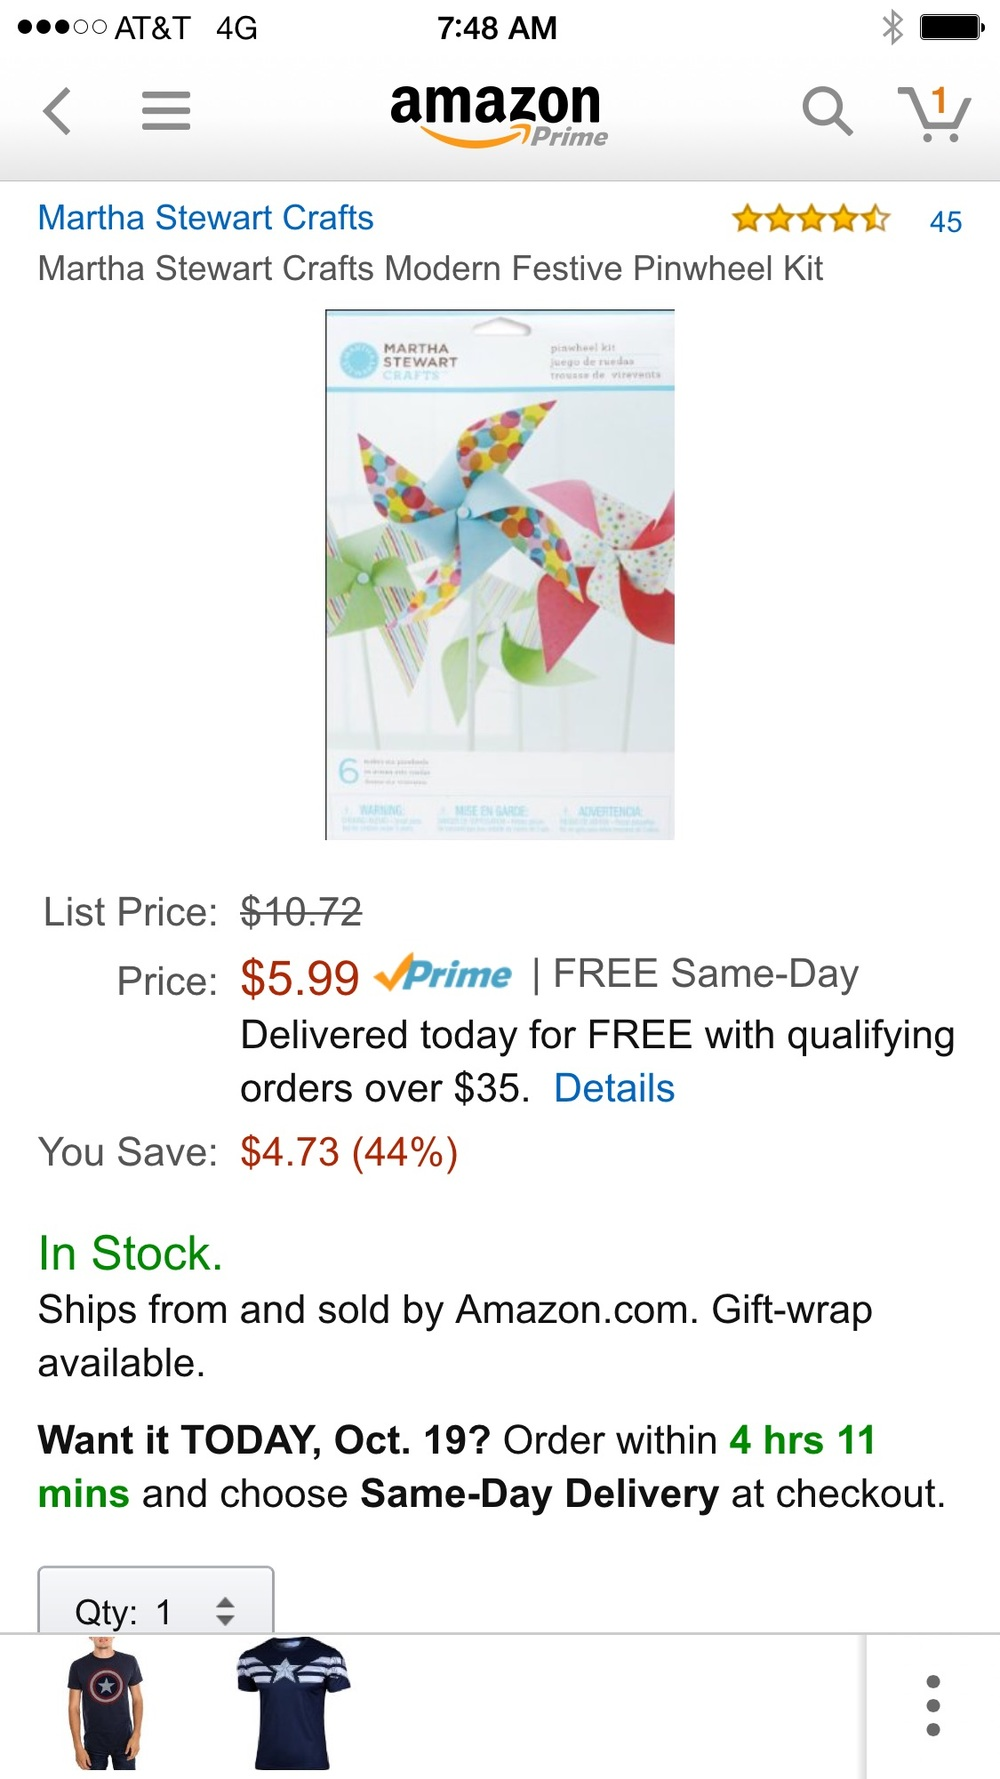 Apologies for the screen shot, blogging from my phone right now! http://www.amazon.com/Martha-Stewart-Crafts-Festive-Pinwheel/dp/B0052UO6W6/ref=sr_1_1?ie=UTF8&qid=1445349897&sr=8-1&keywords=pinwheel+martha+stewart